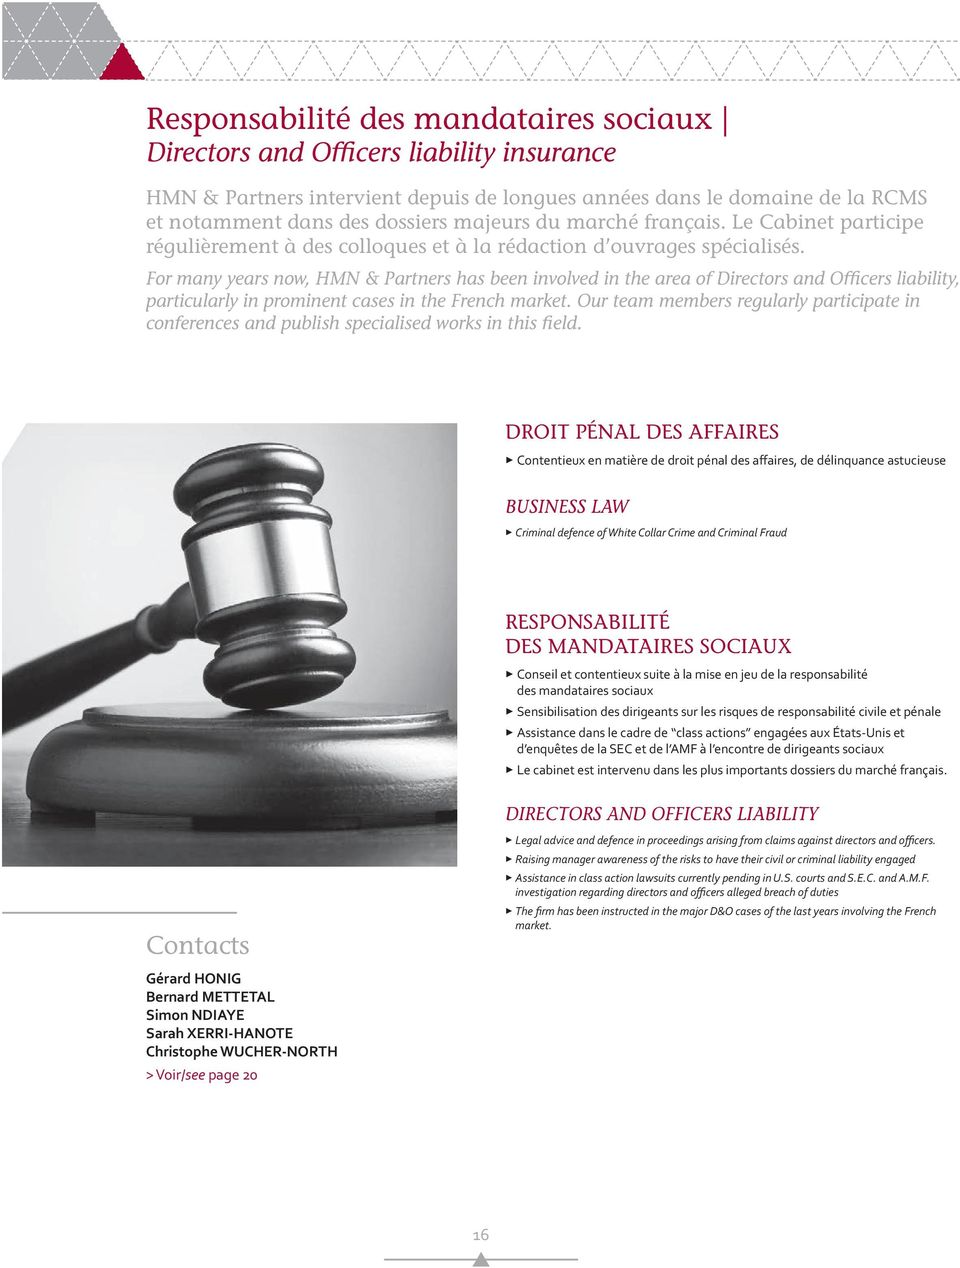 For many years now, HMN & Partners has been involved in the area of Directors and Officers liability, particularly in prominent cases in the French market.